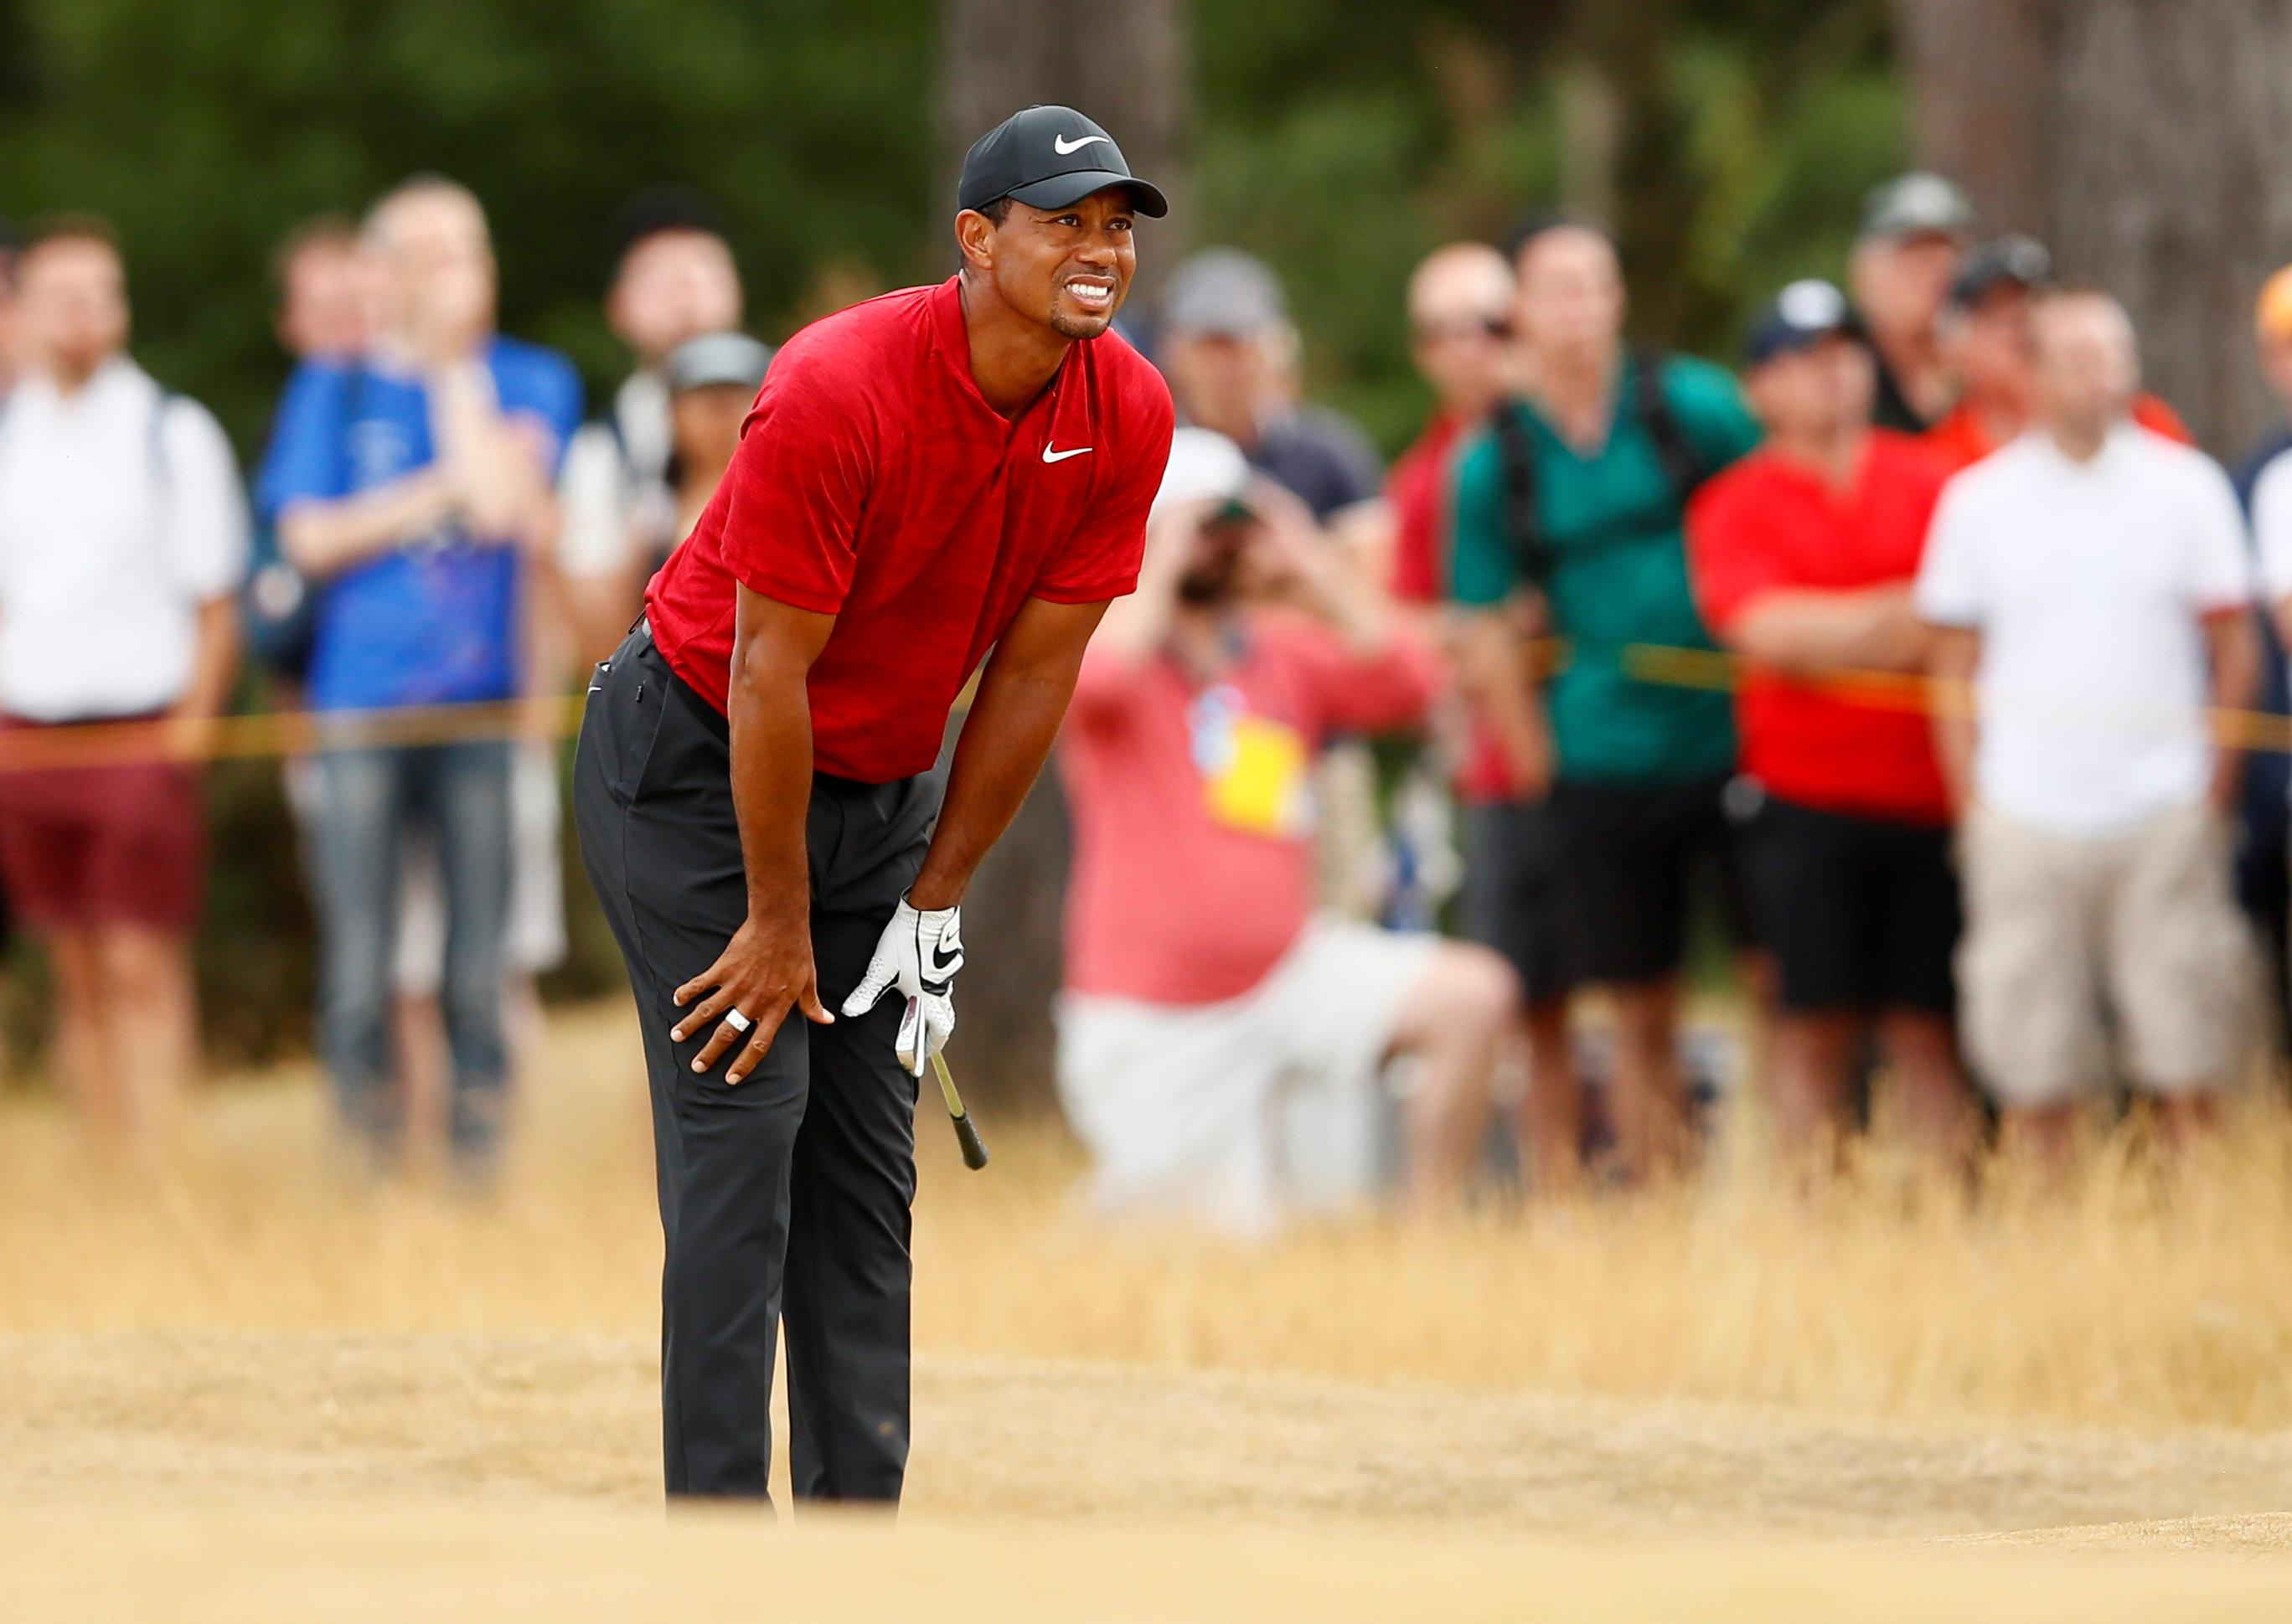 Woods has been one of the most decorated golfers in history but is looking to add to his titles